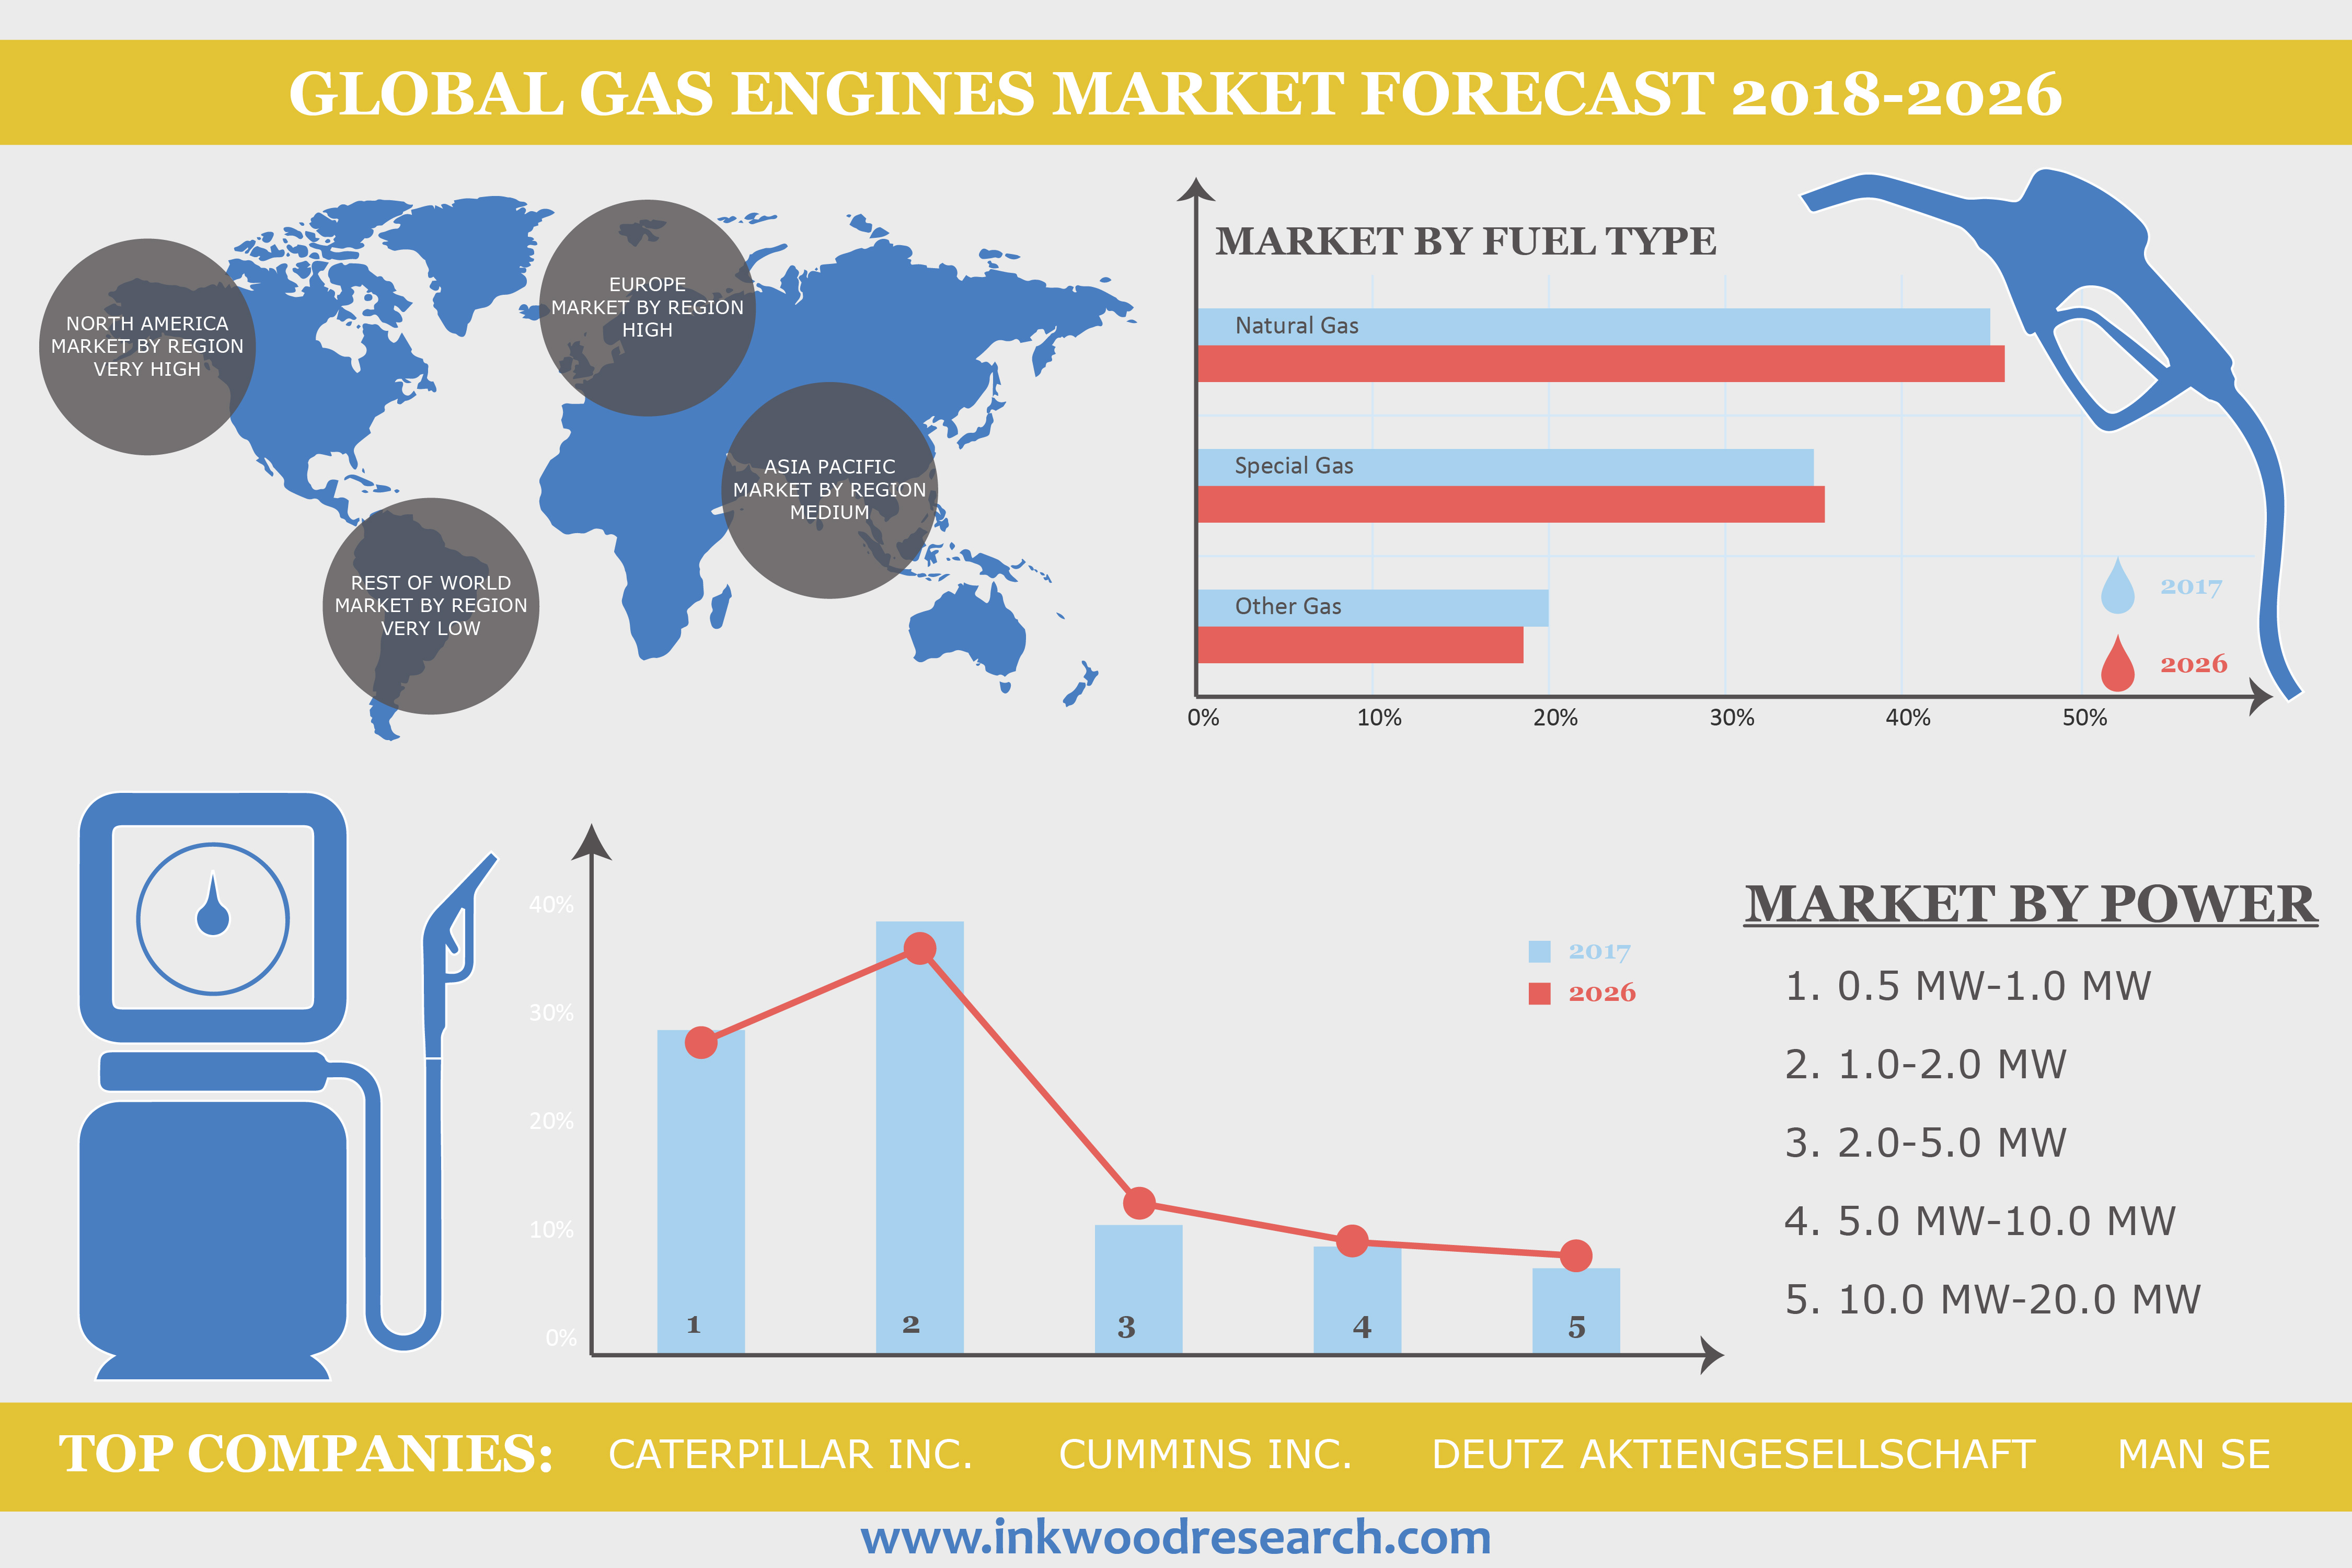 Unrelenting Drop in Gas Prices to Lead the Global Gas Engines Market